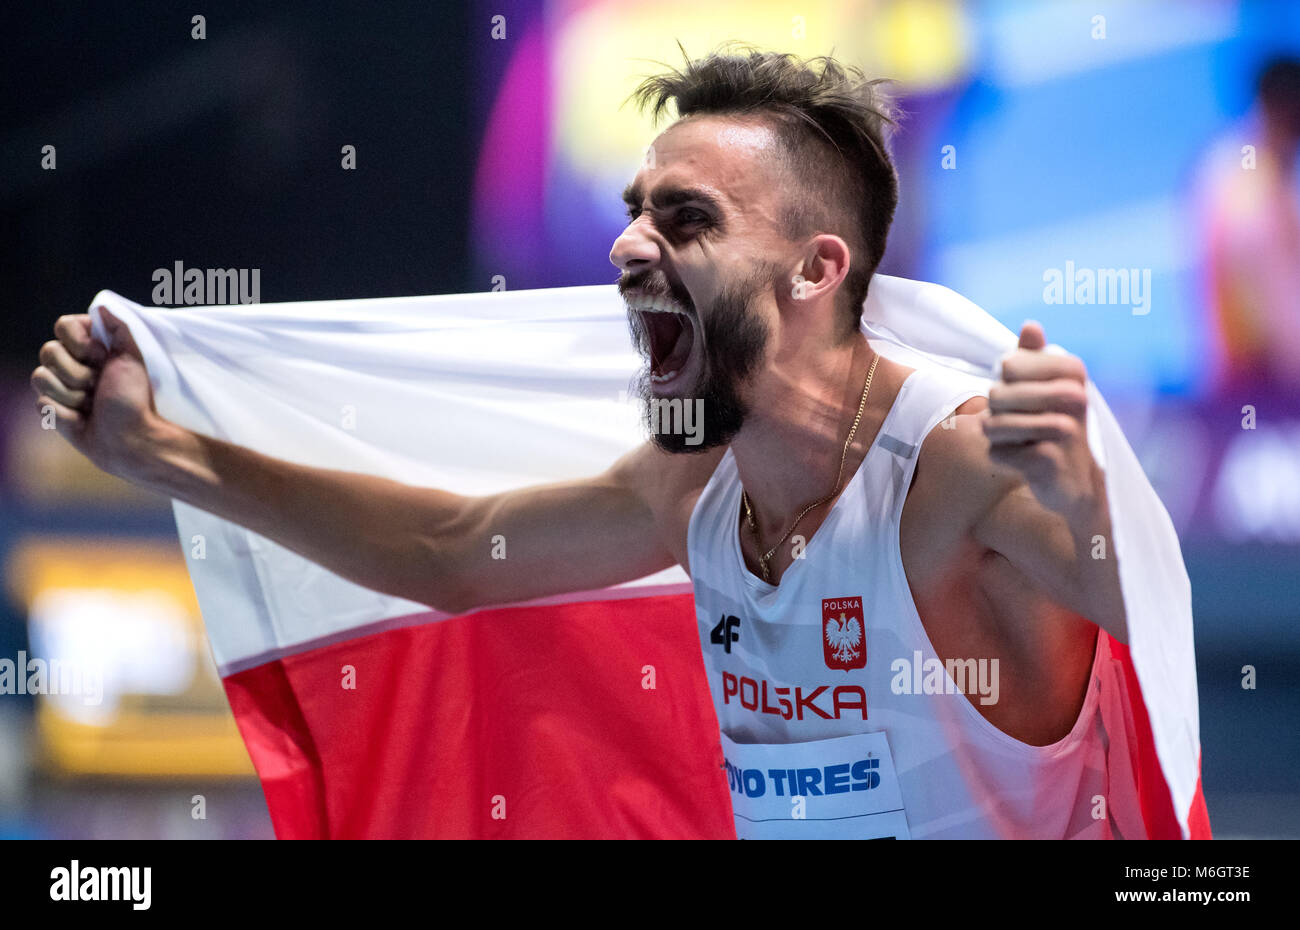 03 March 2018, Great Britain, Birmingham: IAAF World Indoor Championships, men's 800m. Adam Kszczot of Poland - Stock Image